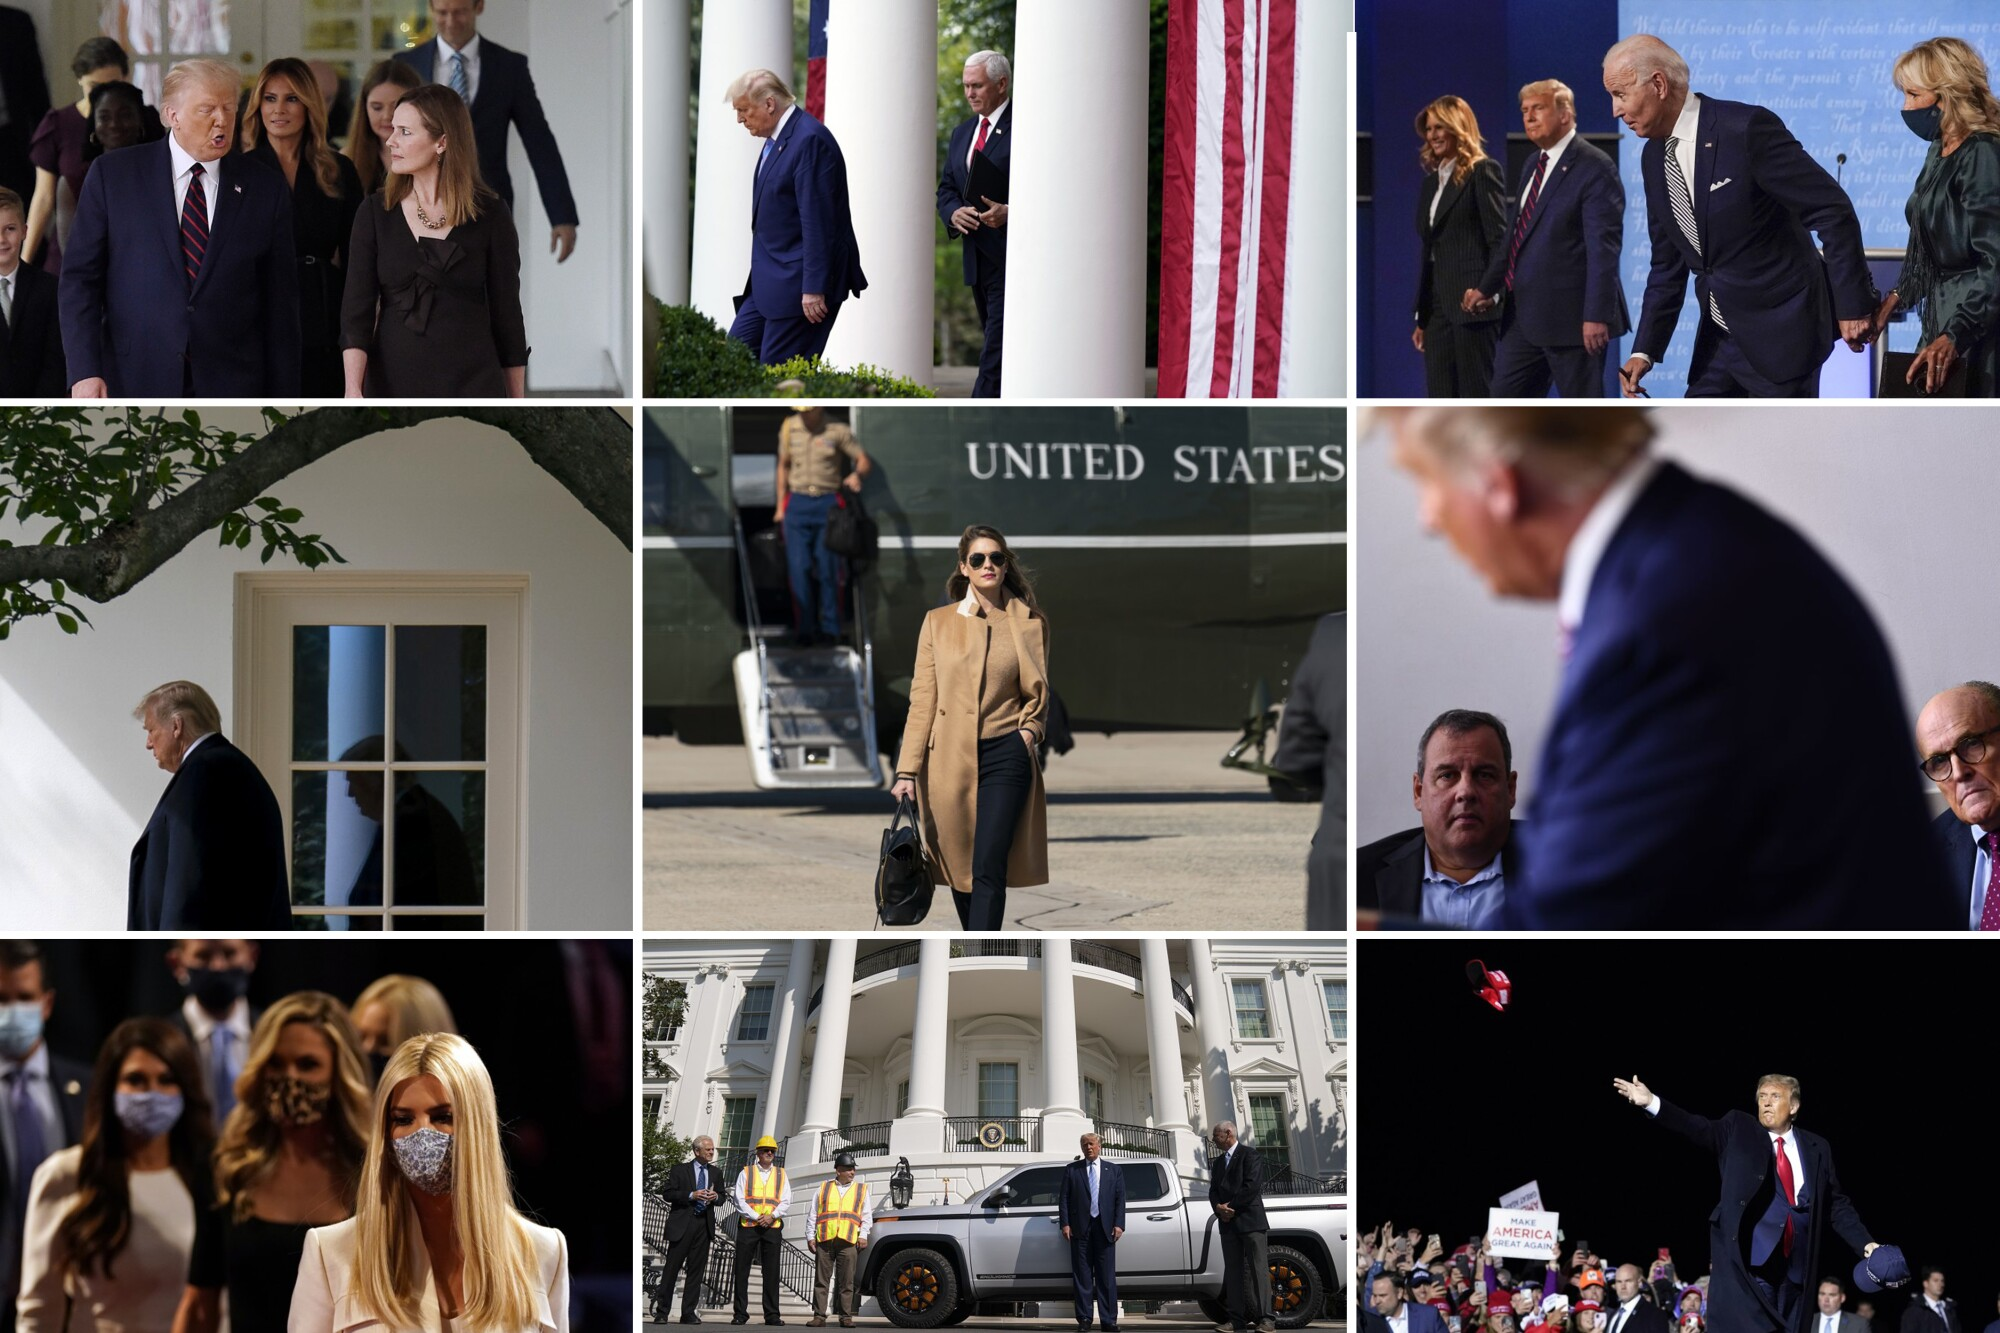 Timeline of President Trump's appearances over the last week